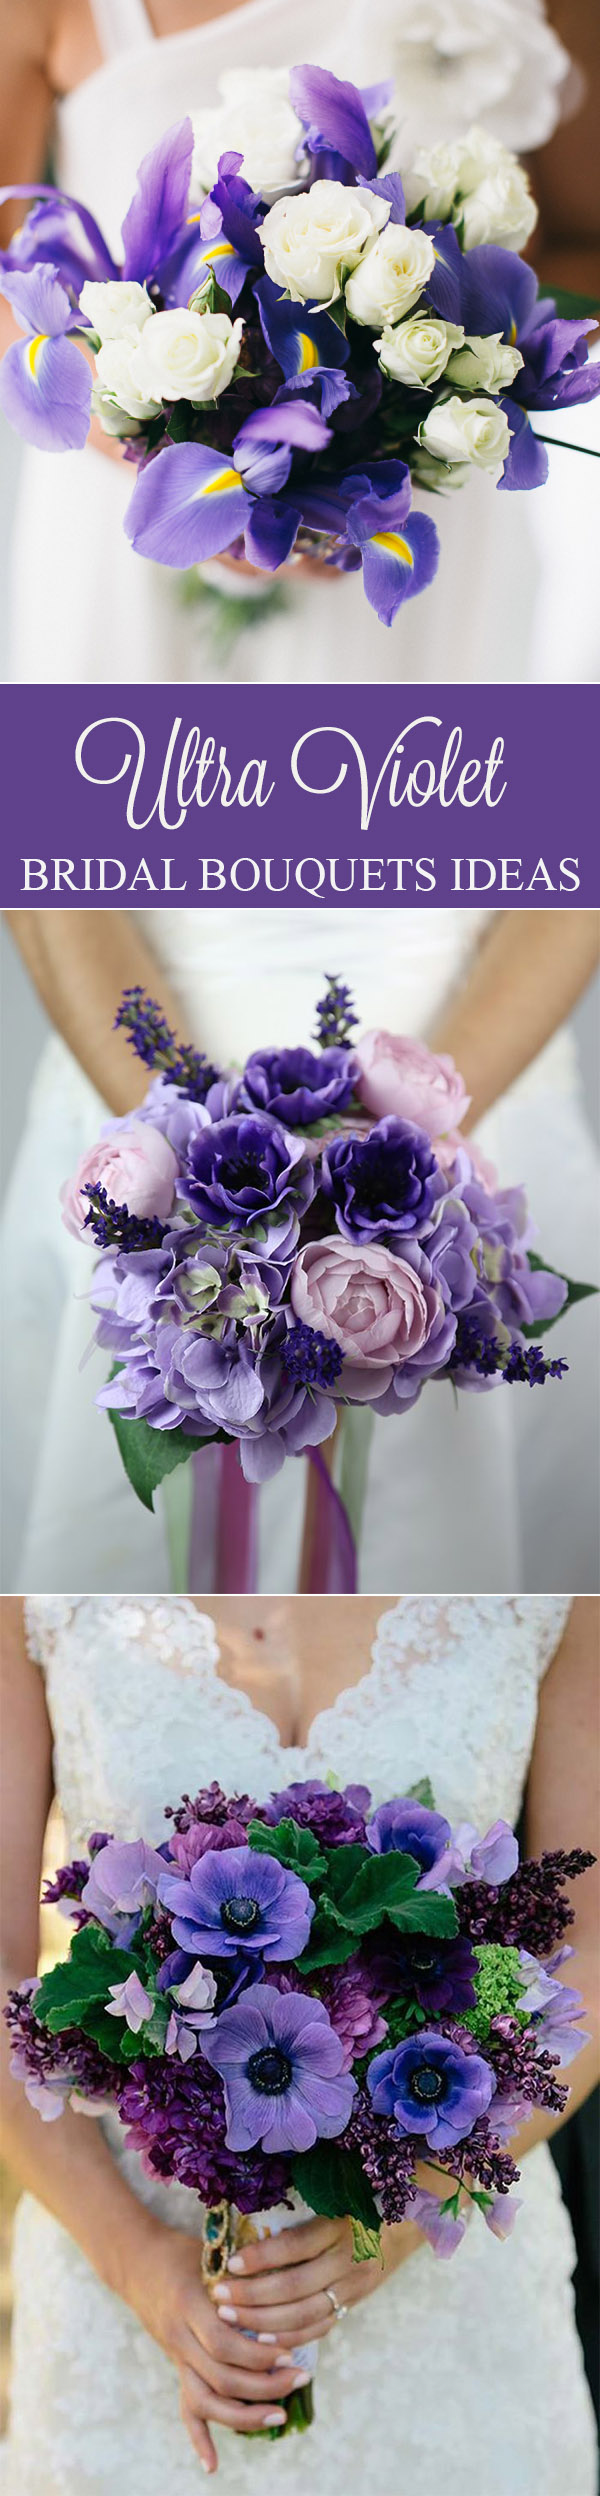 Ultra violet purple bridal bouquets trends for 2018